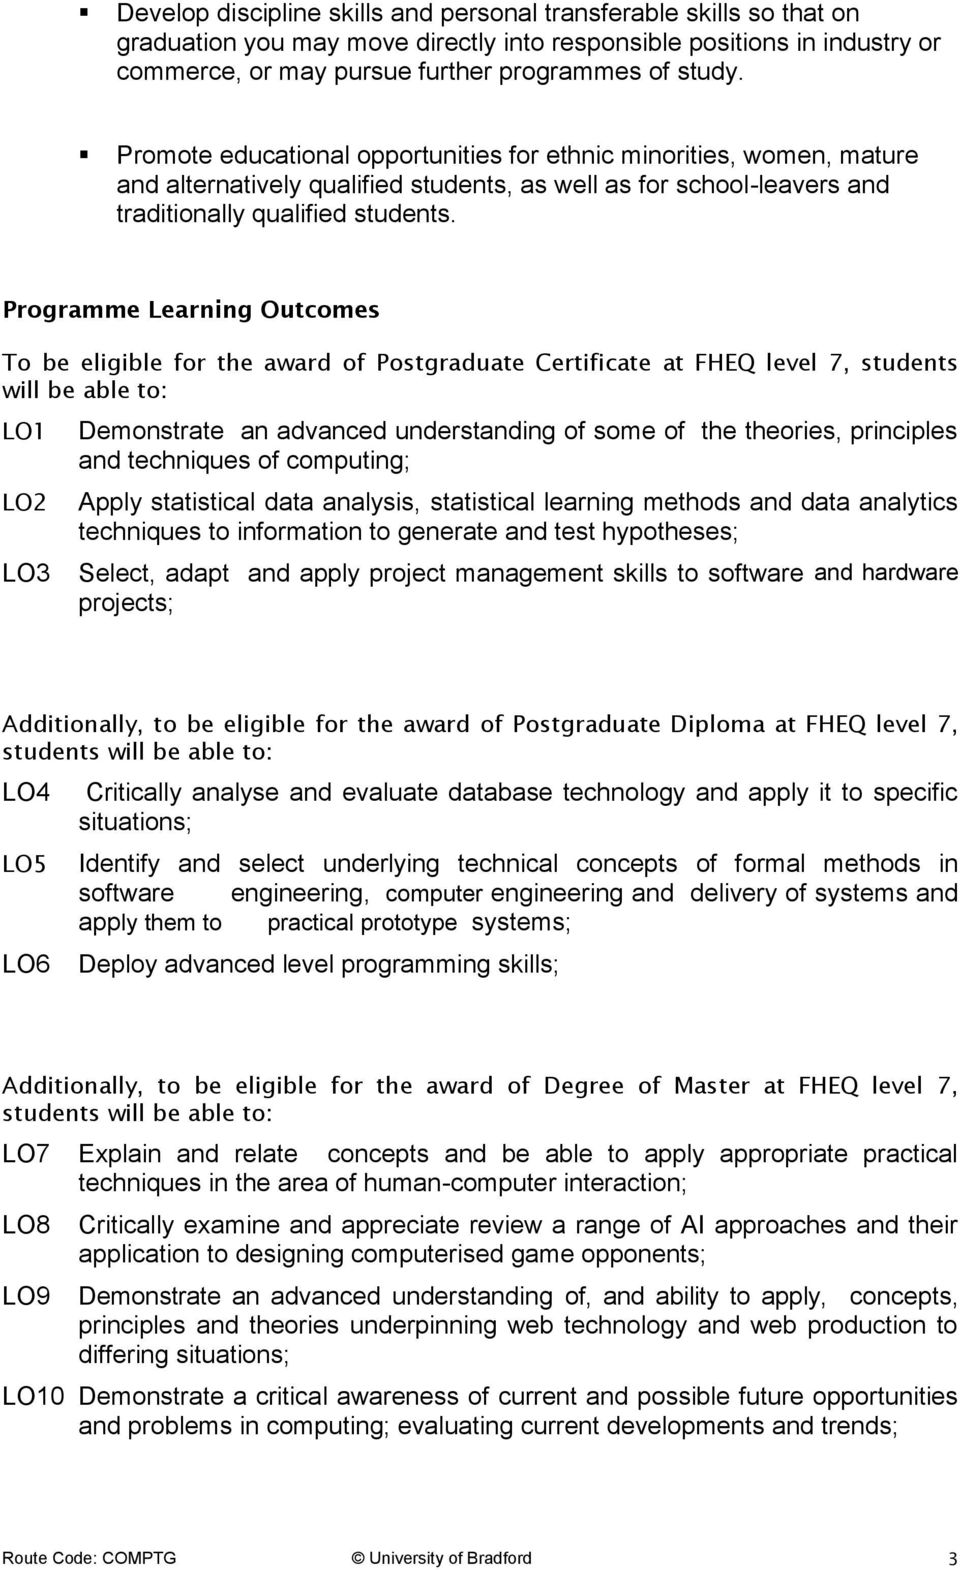 Programme Learning Outcomes To be eligible for the award of Postgraduate Certificate at FHEQ level 7, students will be able to: LO1 LO2 LO3 Demonstrate an advanced understanding of some of the